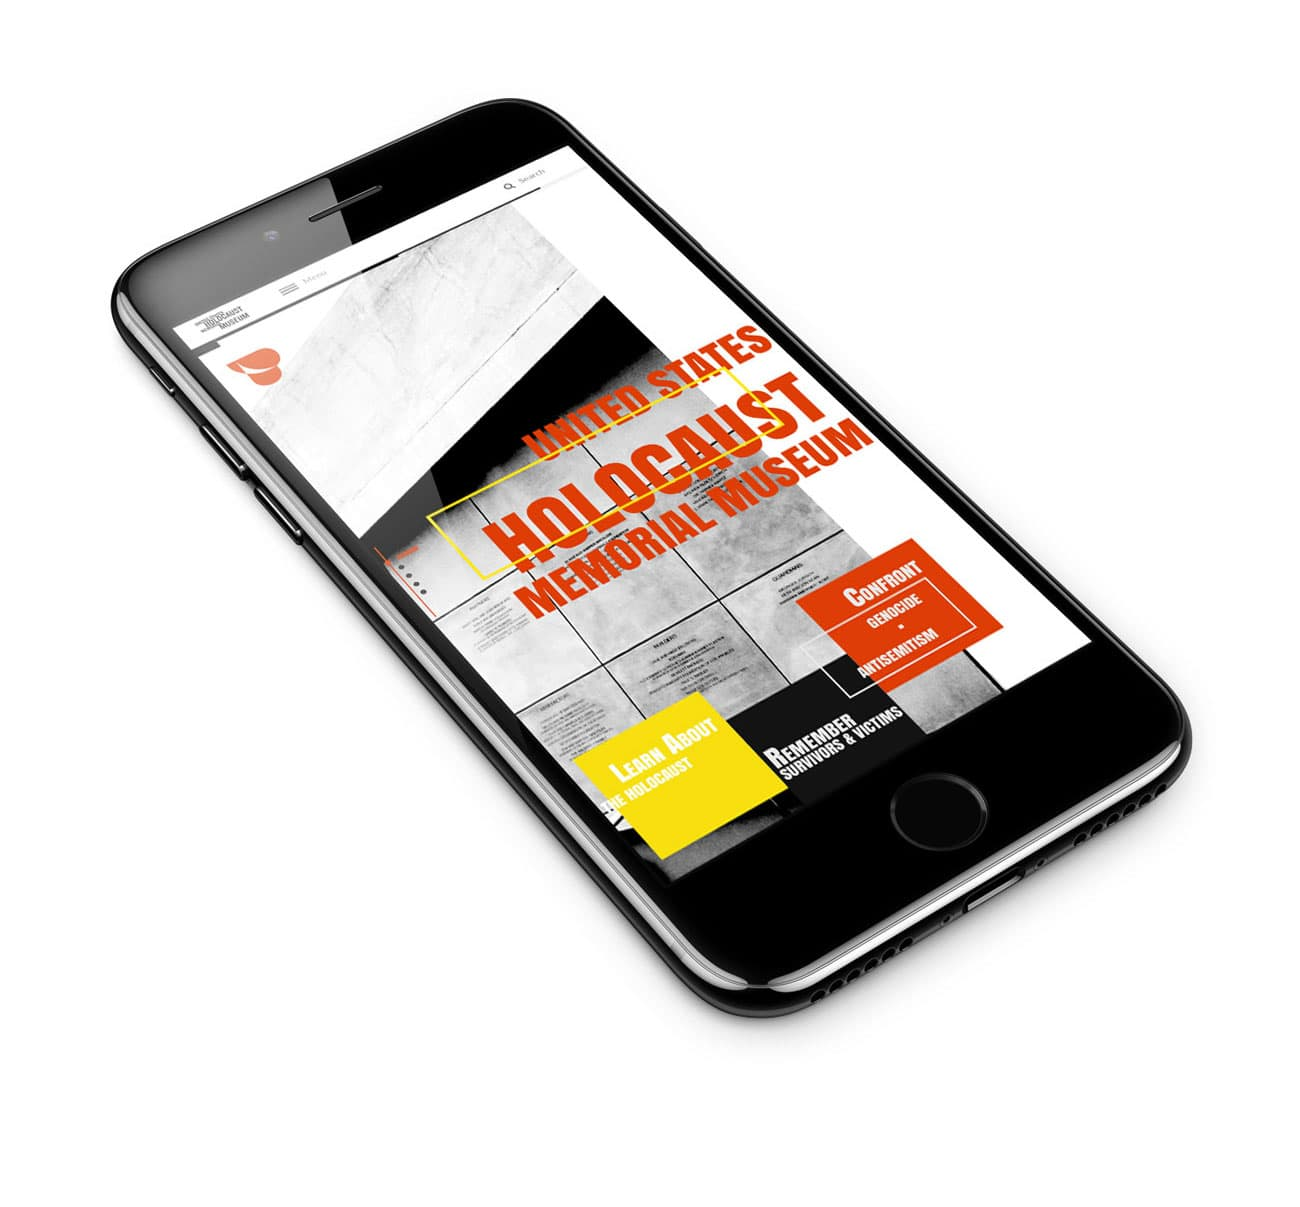 USHMM front website page design on iPhone 7